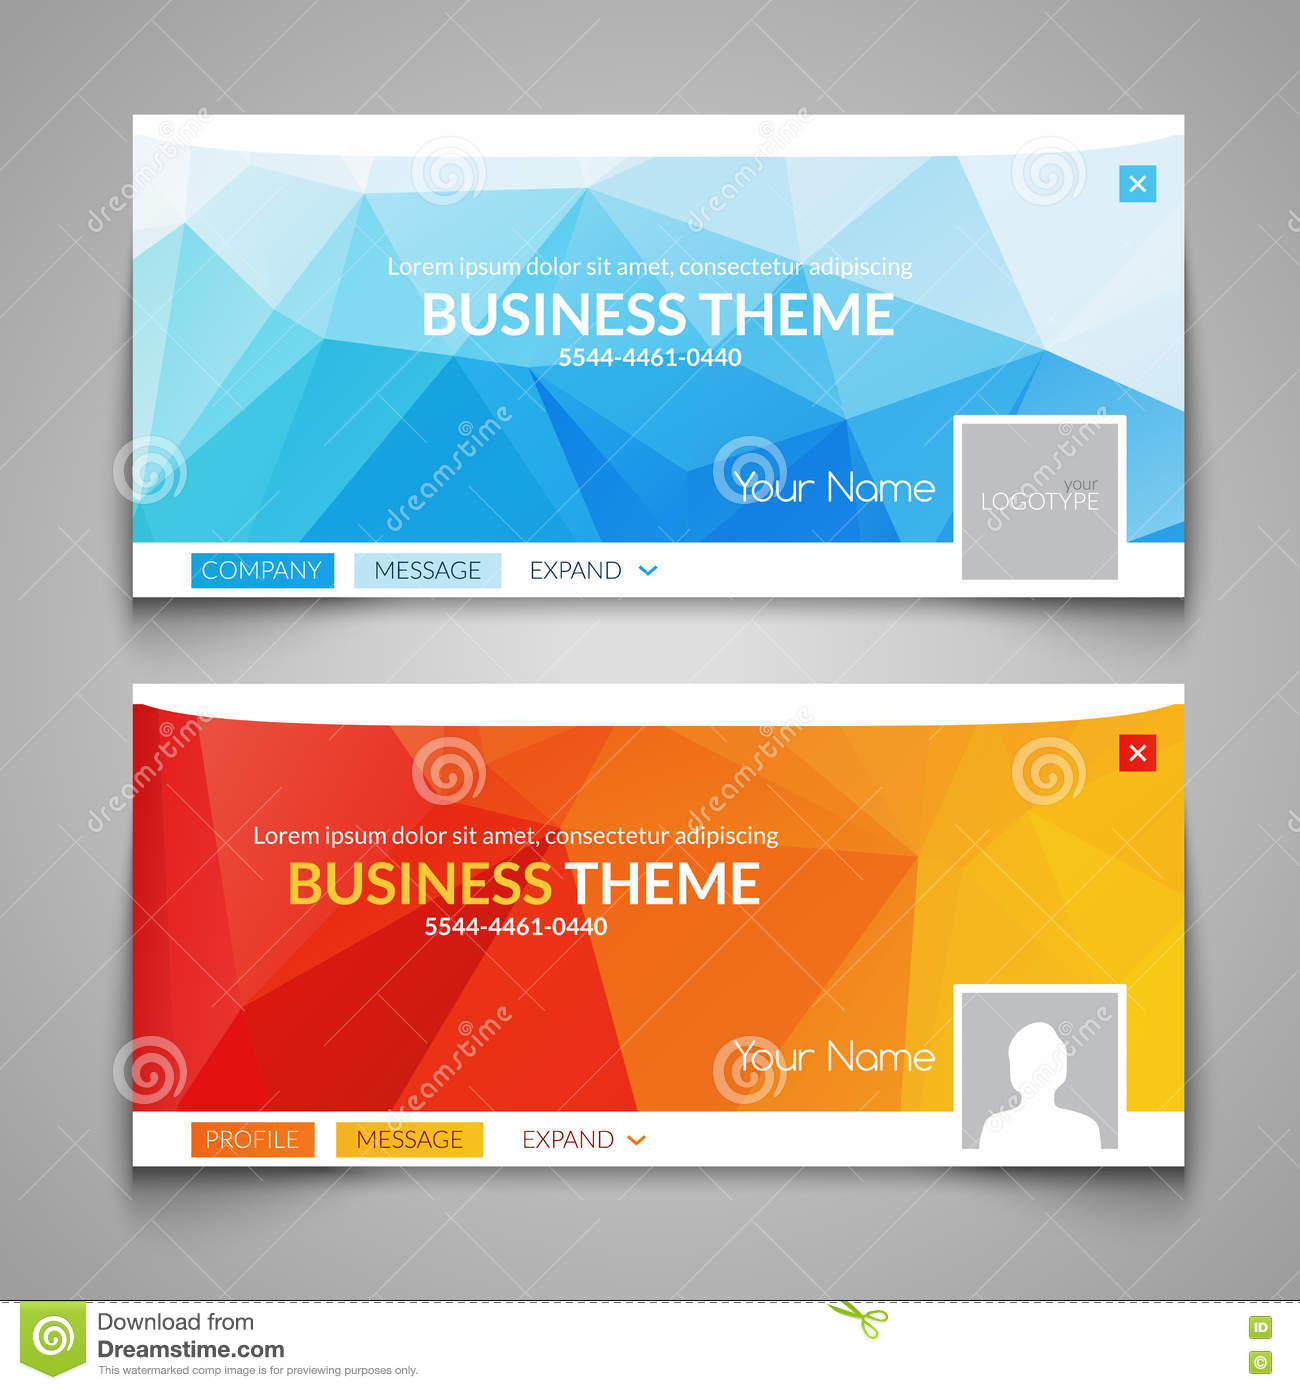 Web business site design header layout template creative for Website layout design software free download